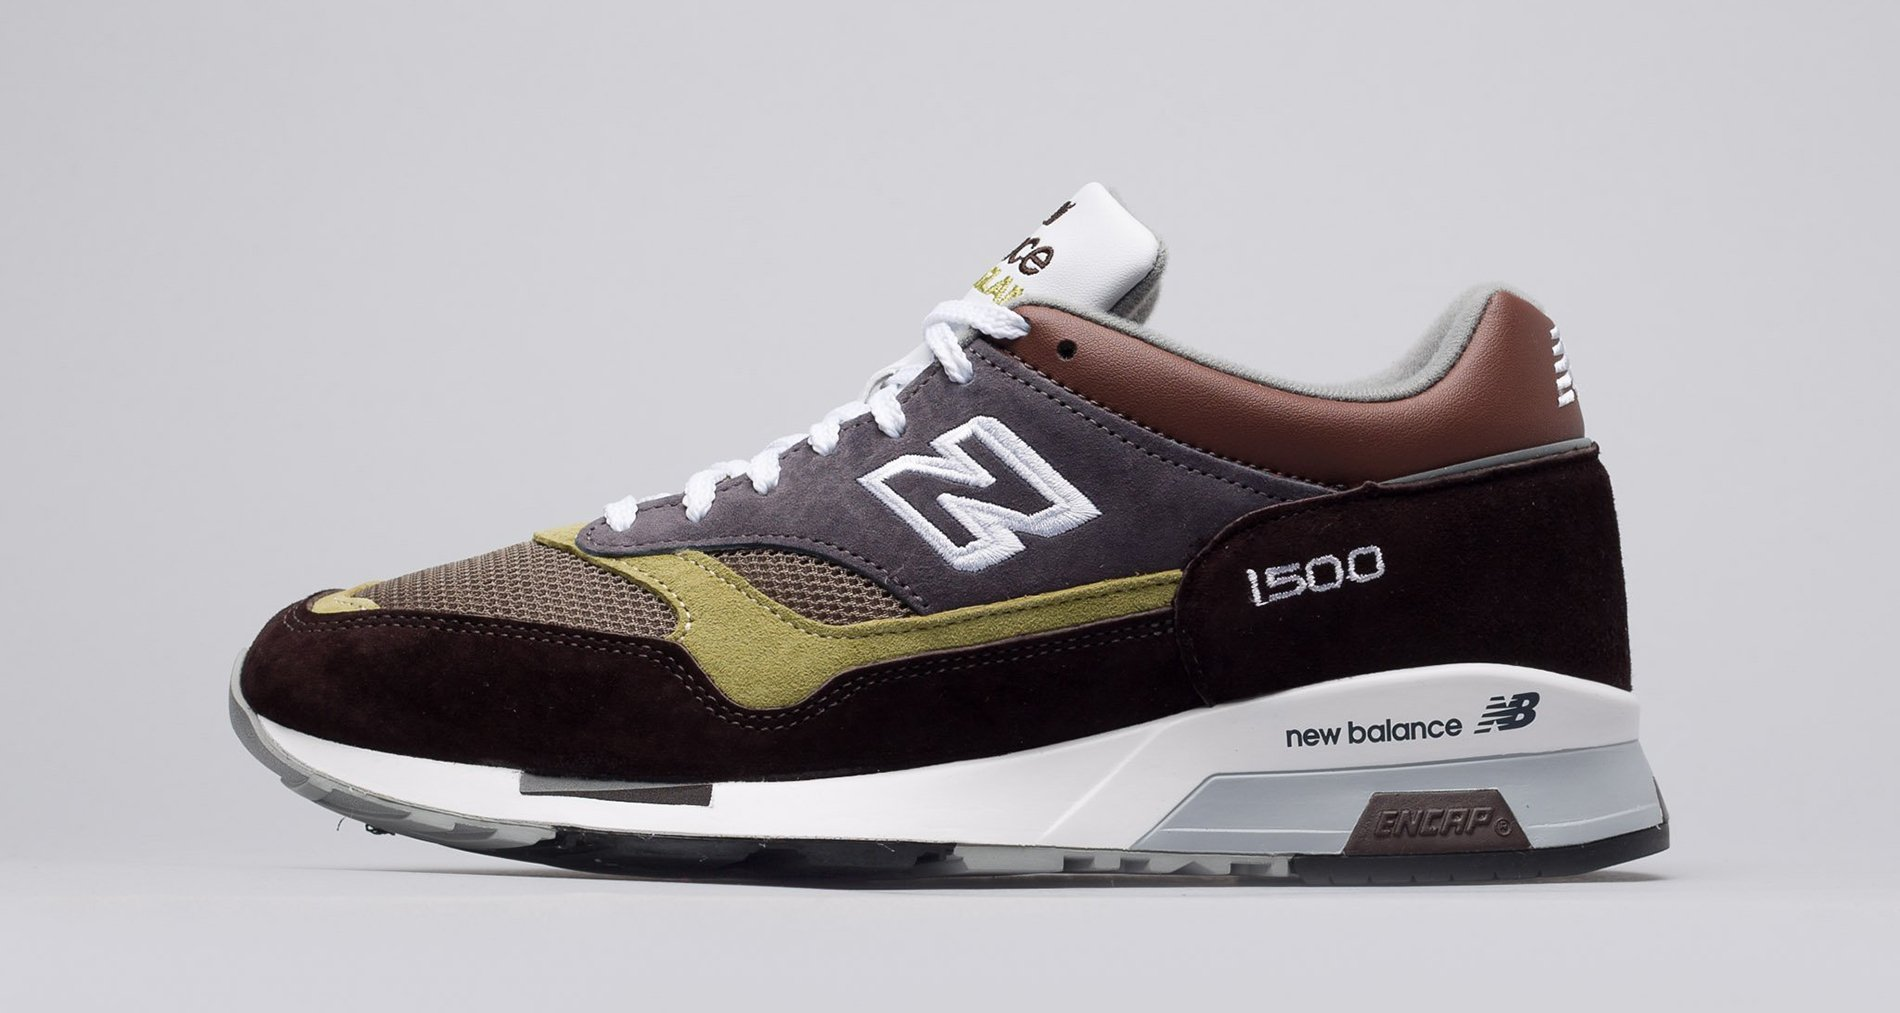 new balance 1500 made in the uk drops in fall hues nice. Black Bedroom Furniture Sets. Home Design Ideas